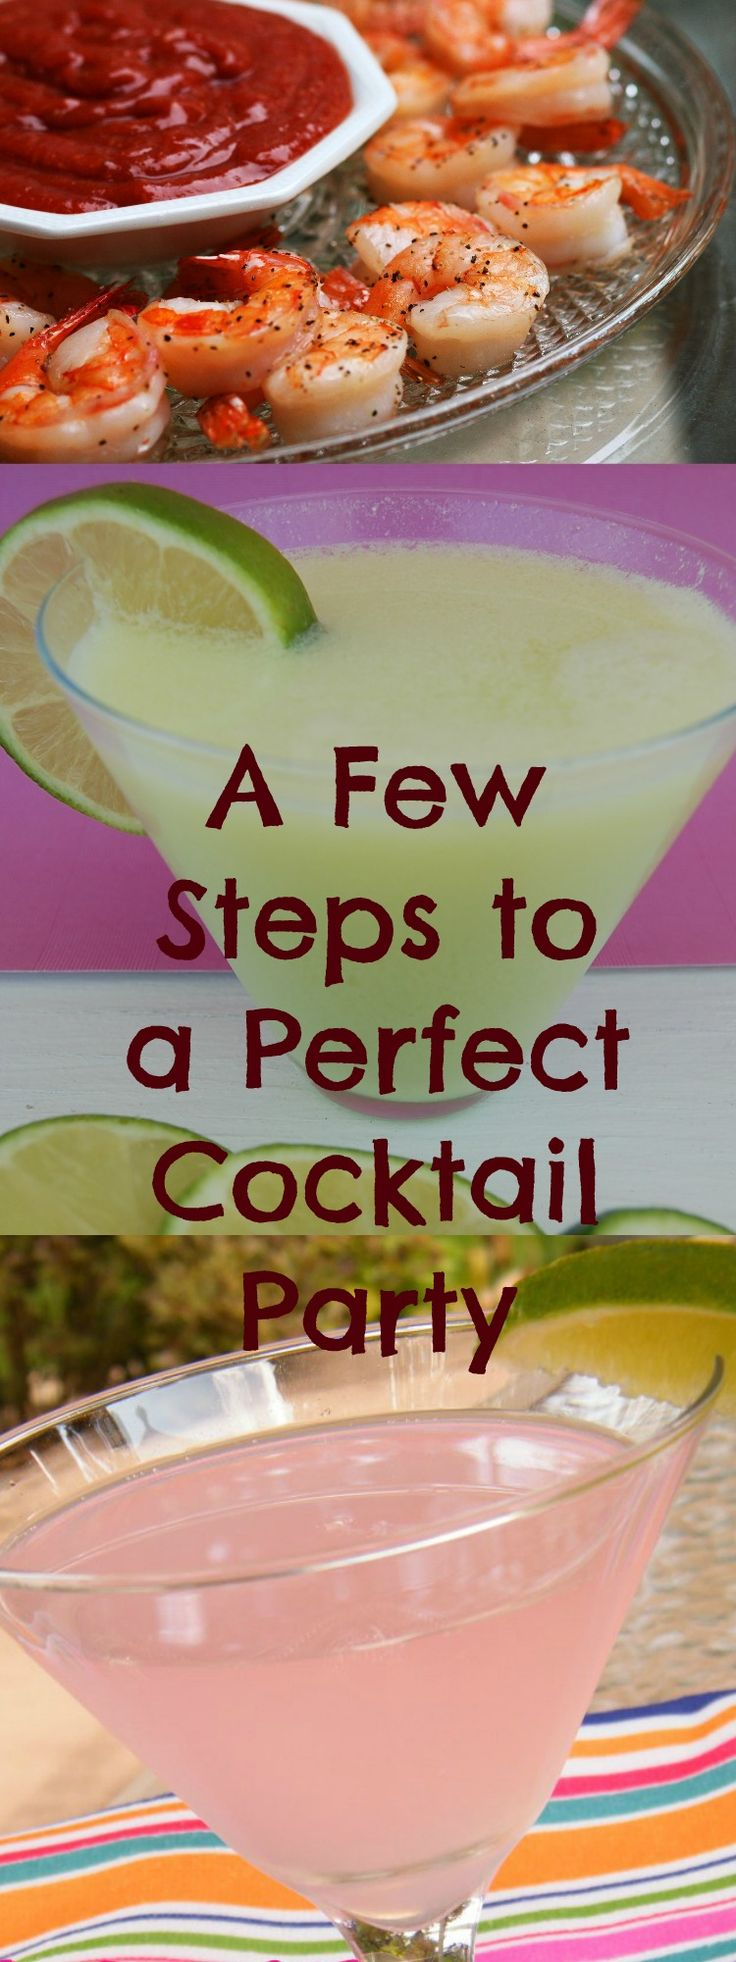 Plan the Perfect Cocktail Party | Who Needs A Cape? Drink and food suggestions along with helpful hints on how to host your own Cocktail Party!